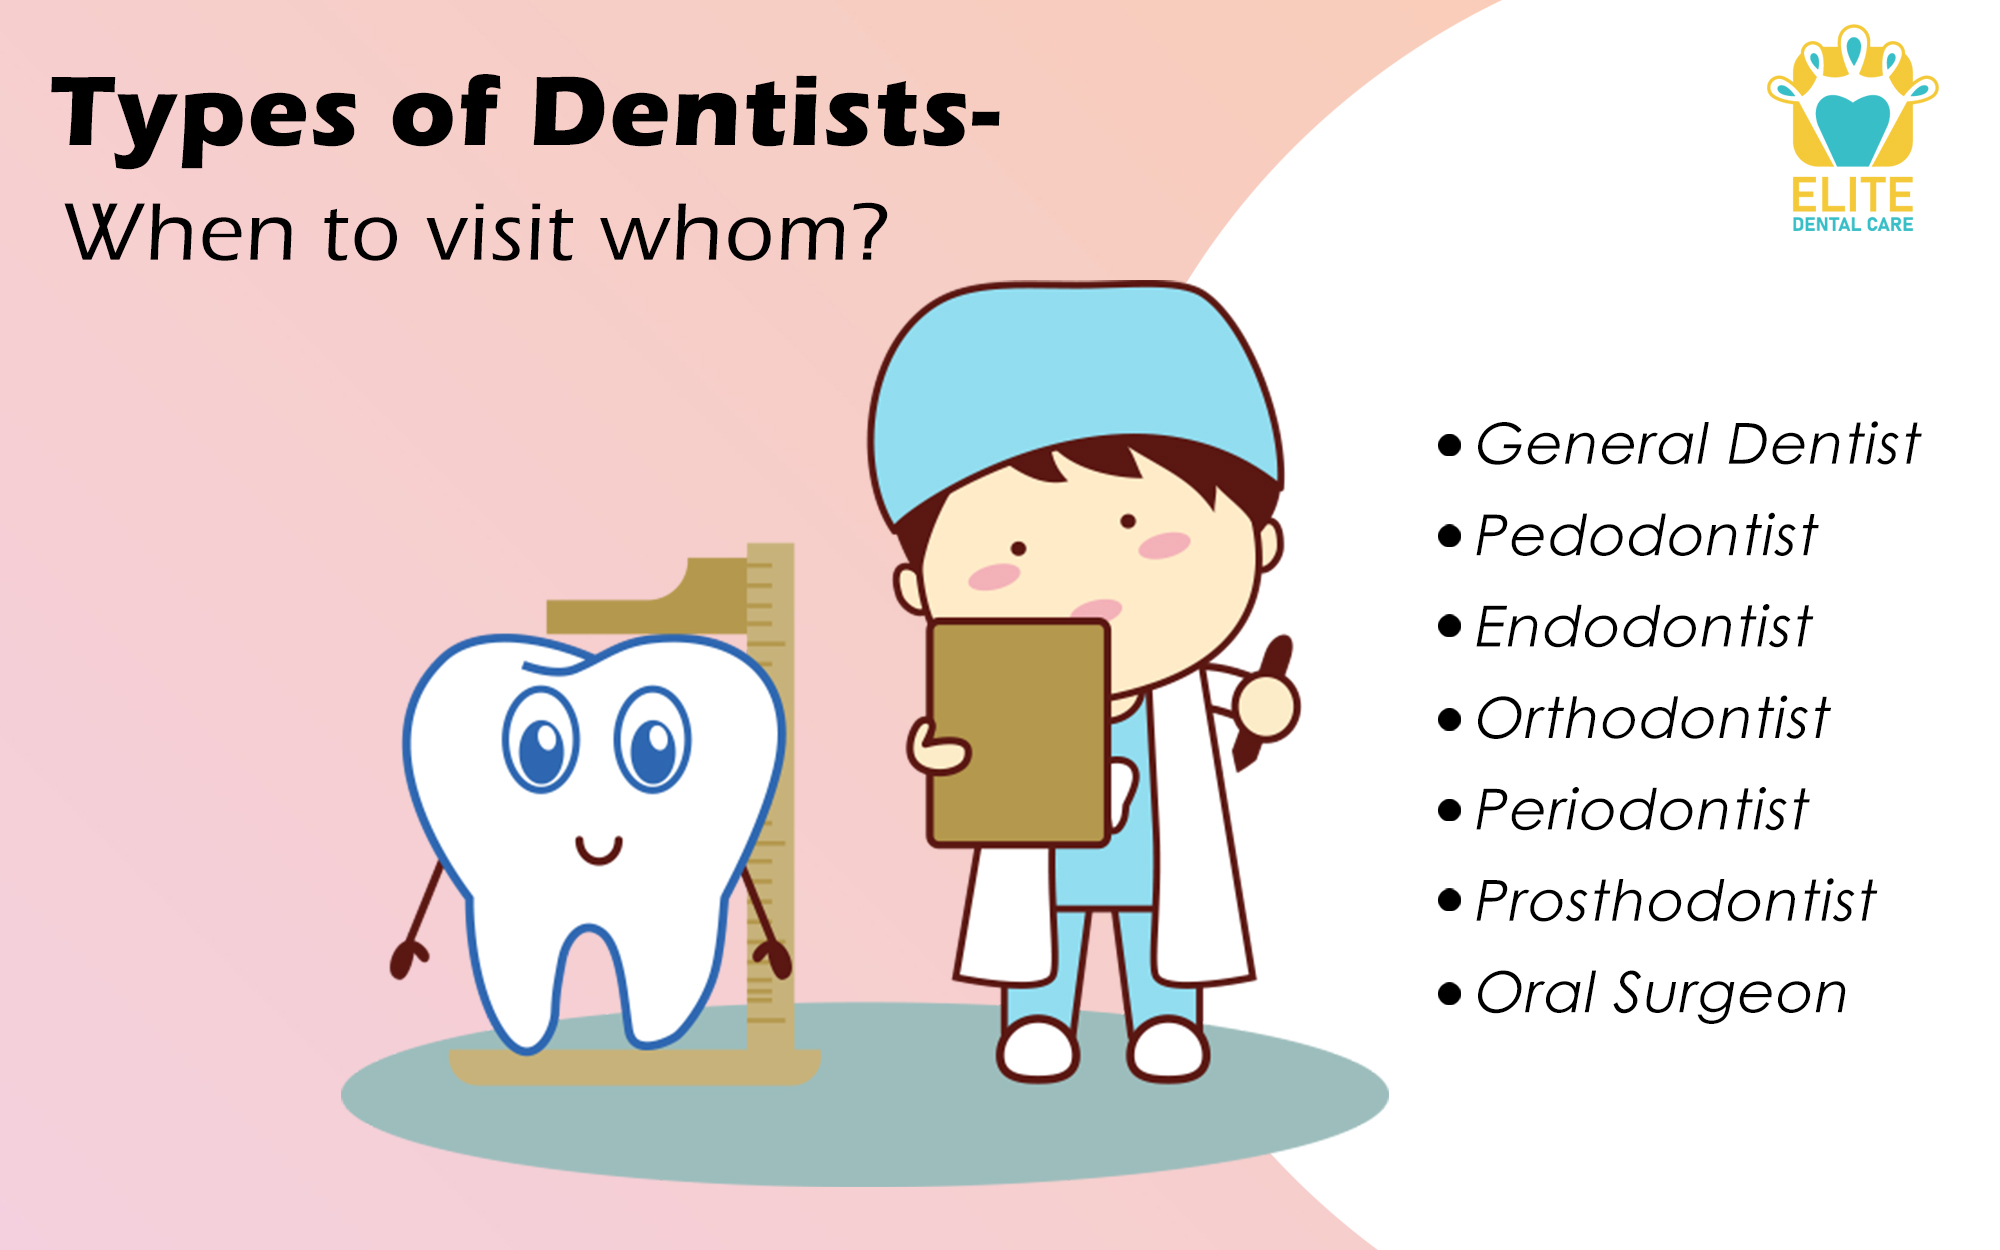 TYPES OF DENTISTS - WHEN TO VISIT WHOM?